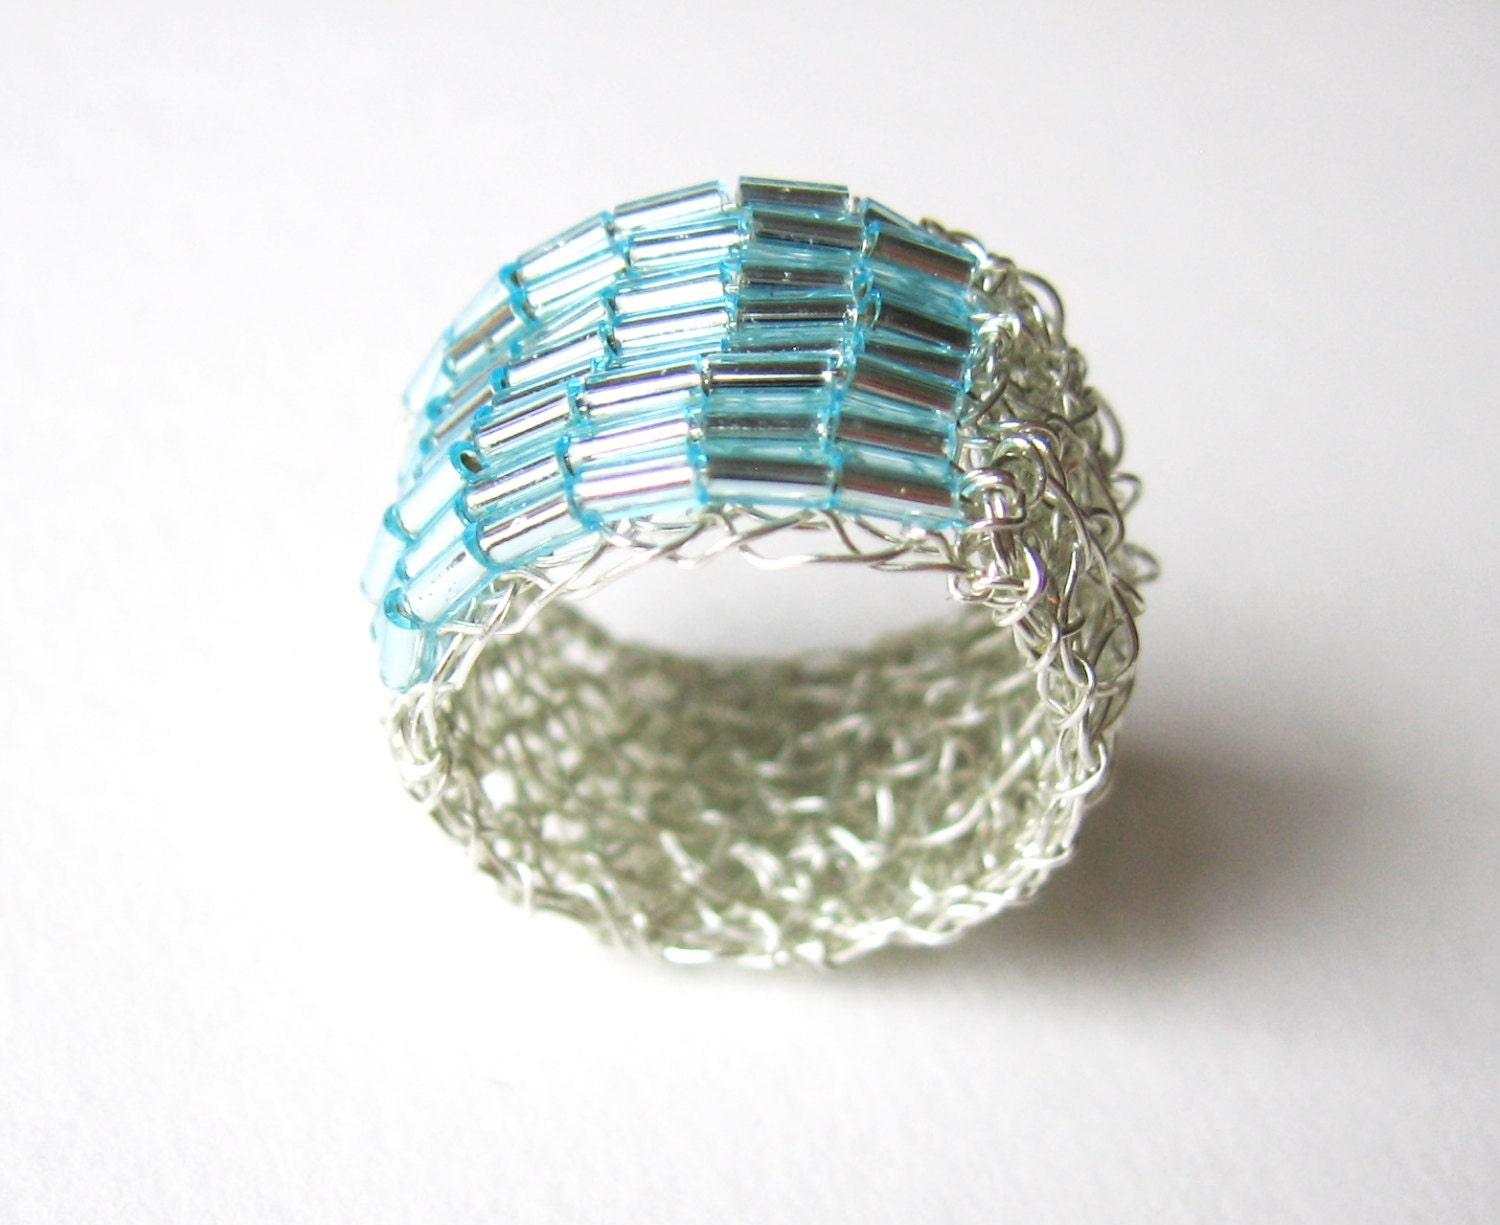 silver wire crochet band ring beaded handmade from